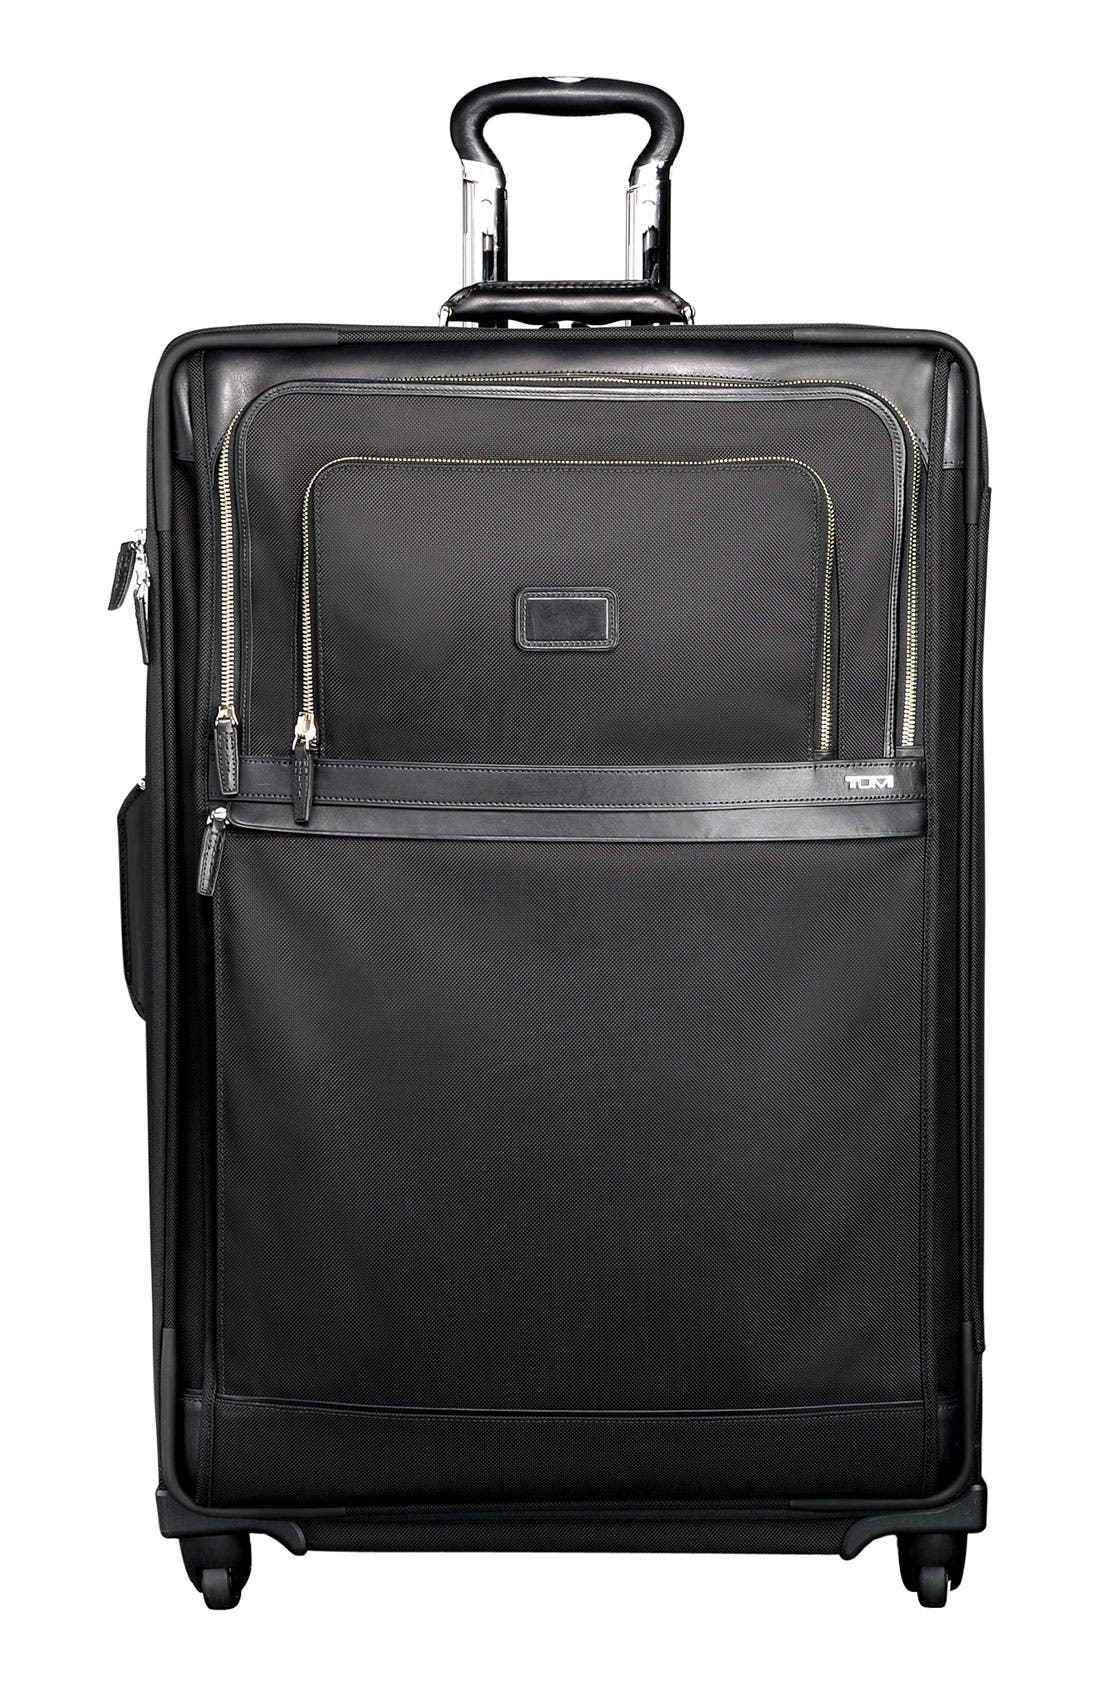 Alternate Image 1 Selected - Tumi 'Bedford - Paddock' 4-Wheeled Worldwide Trip Bag